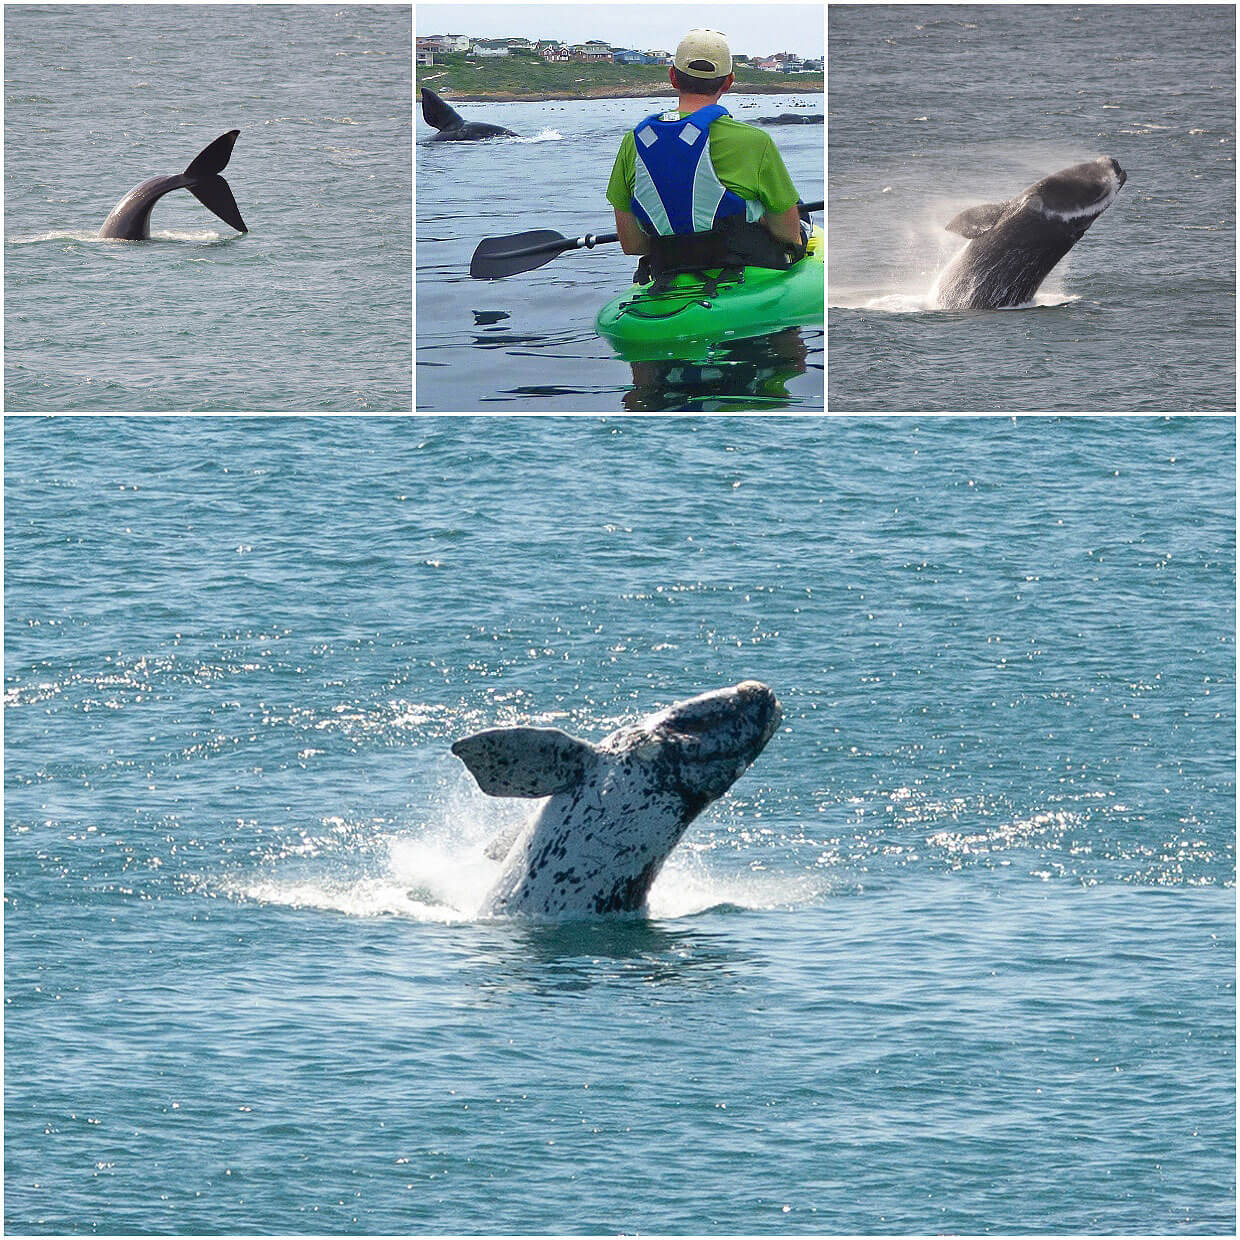 Amazing Whale encounter at Gansbaai